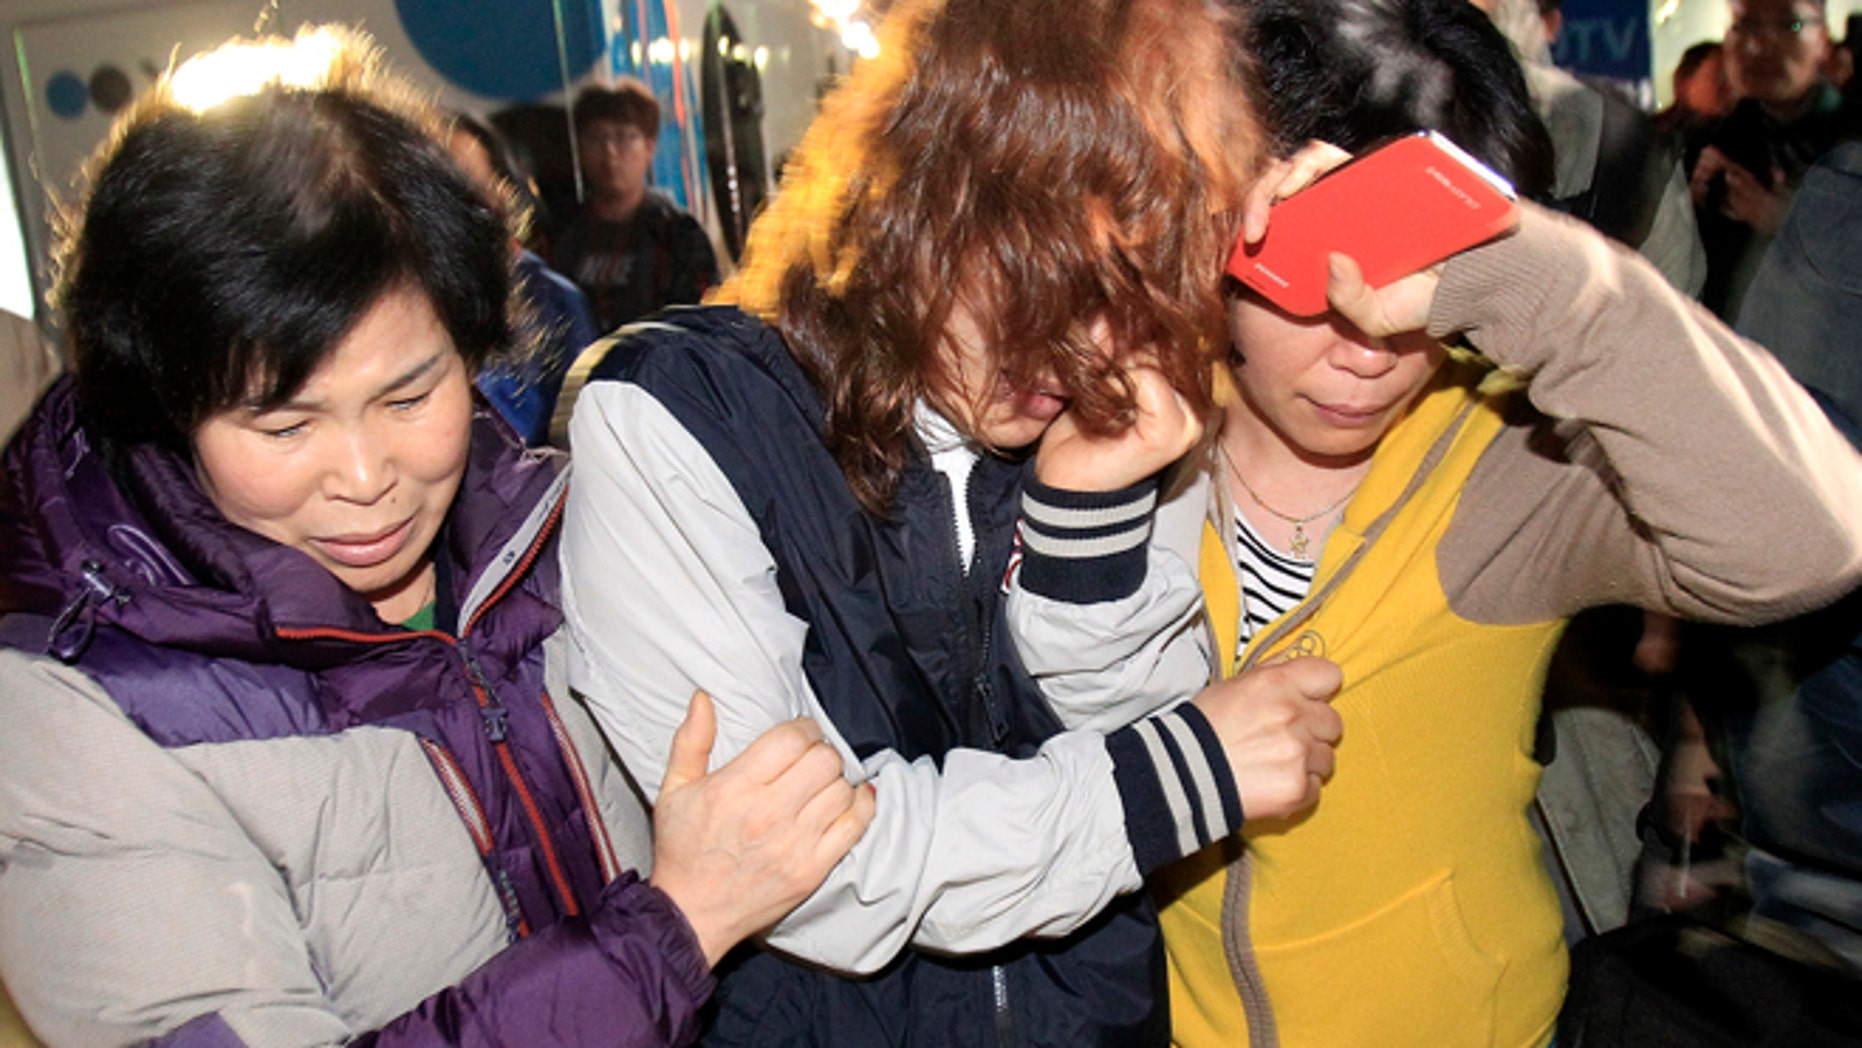 April 16: Relatives arrive to wait for missing people at a port in Jindo,South Korea.